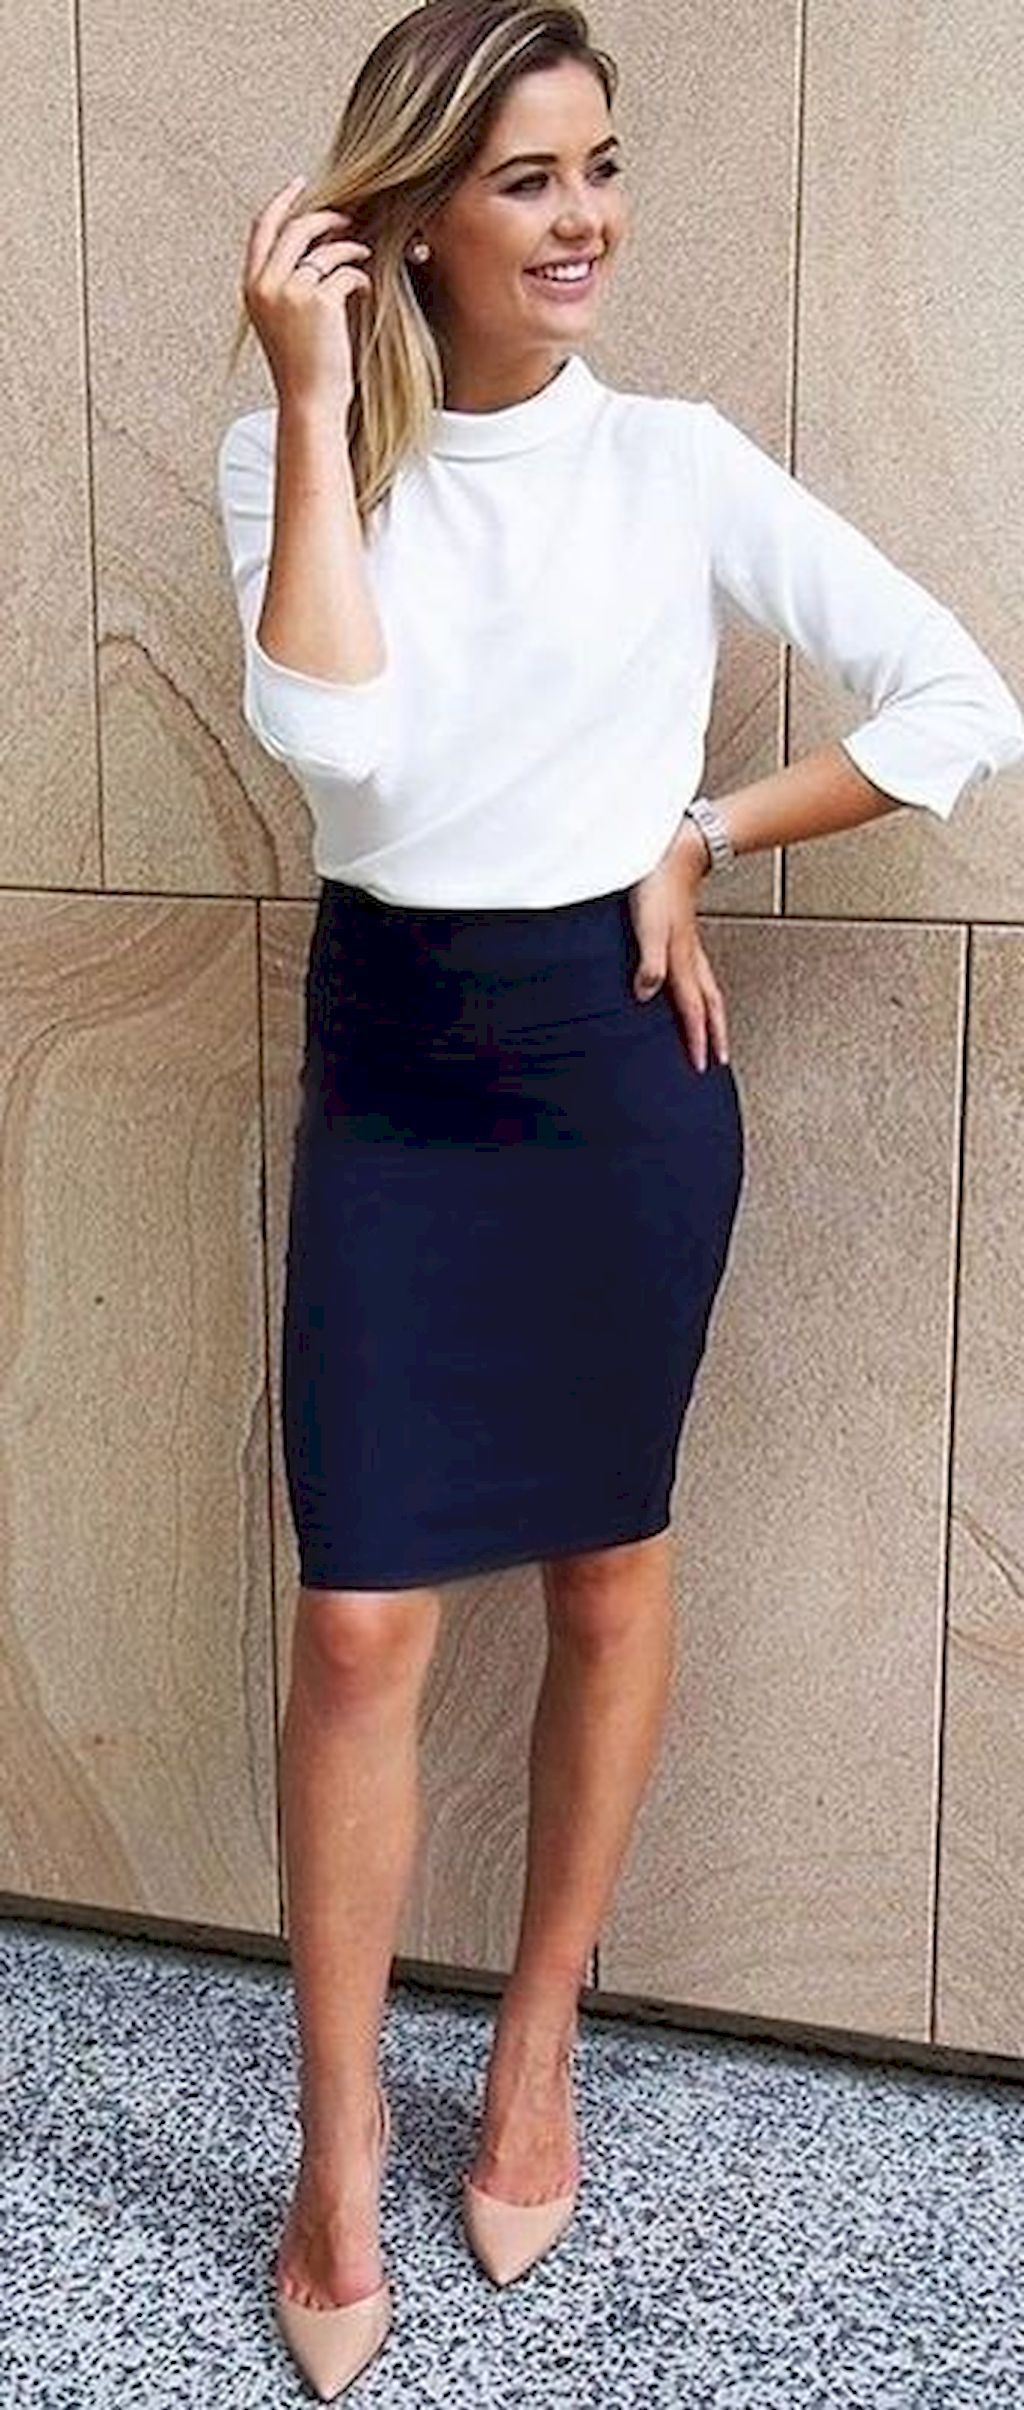 09eb525723 26 Professional Work Outfits Ideas for Women to Try | Style 2018 ...